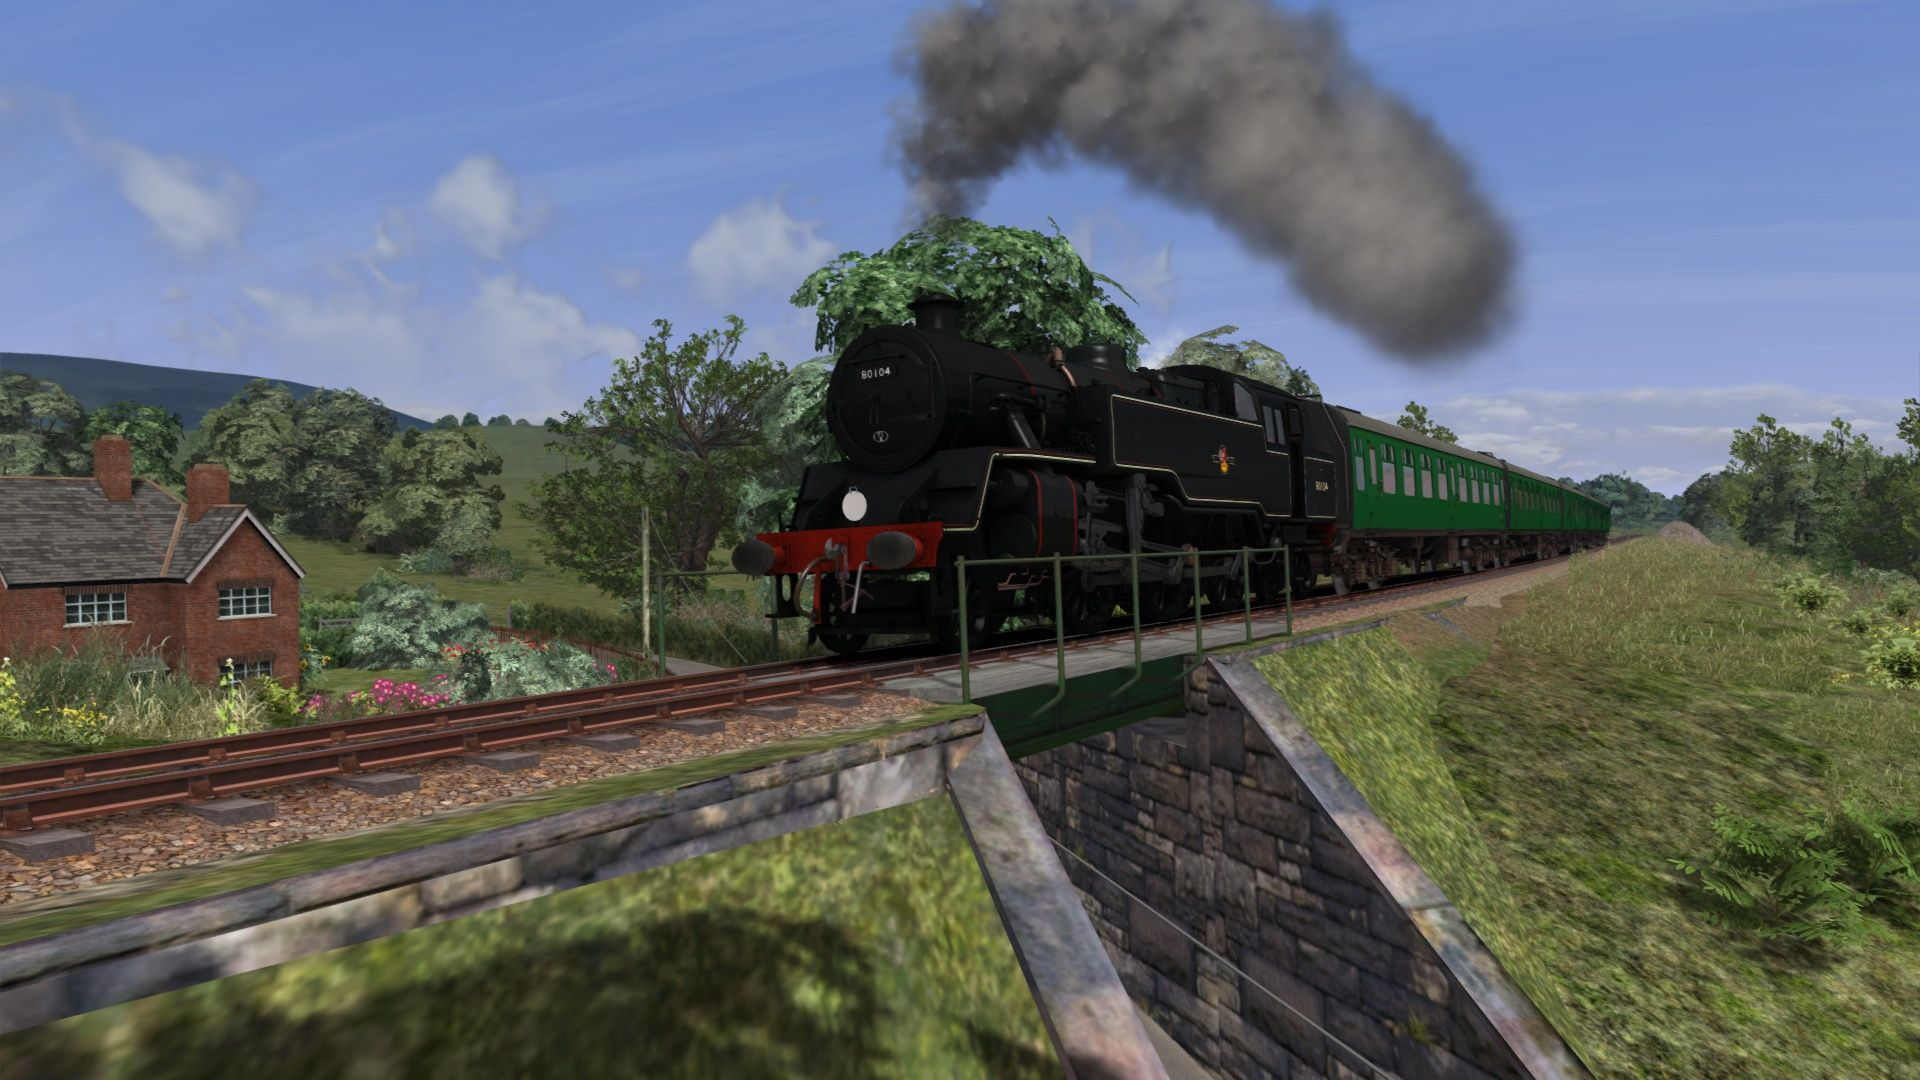 Screenshot_Swanage Railway_50.61724--1.99925_16-08-17